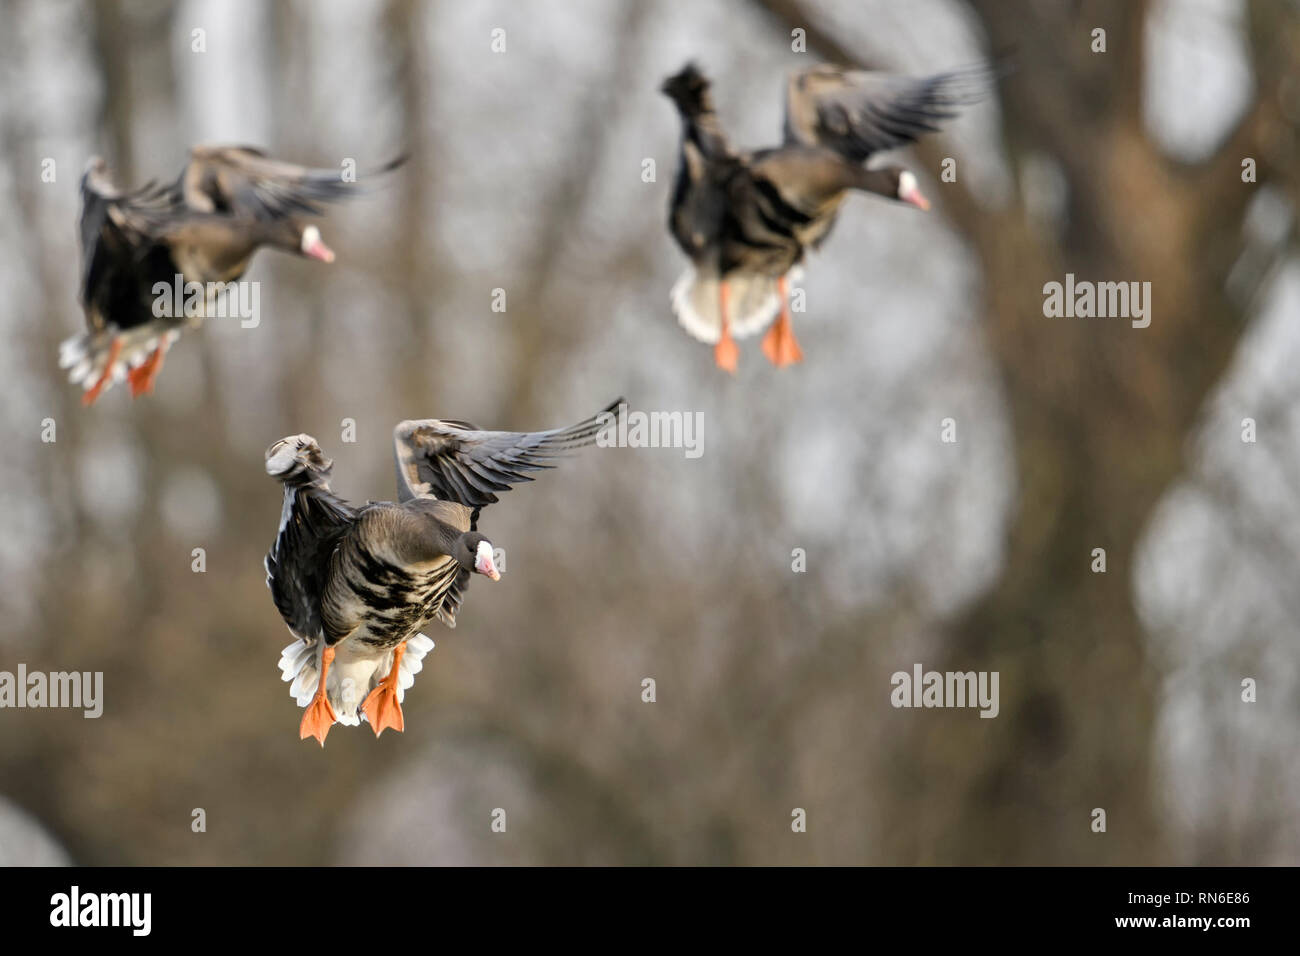 Greater White-fronted Geese / Blaessgaense ( Anser albifrons ), little flock in flight, landing in front of pollarded willows, typical background, wil - Stock Image